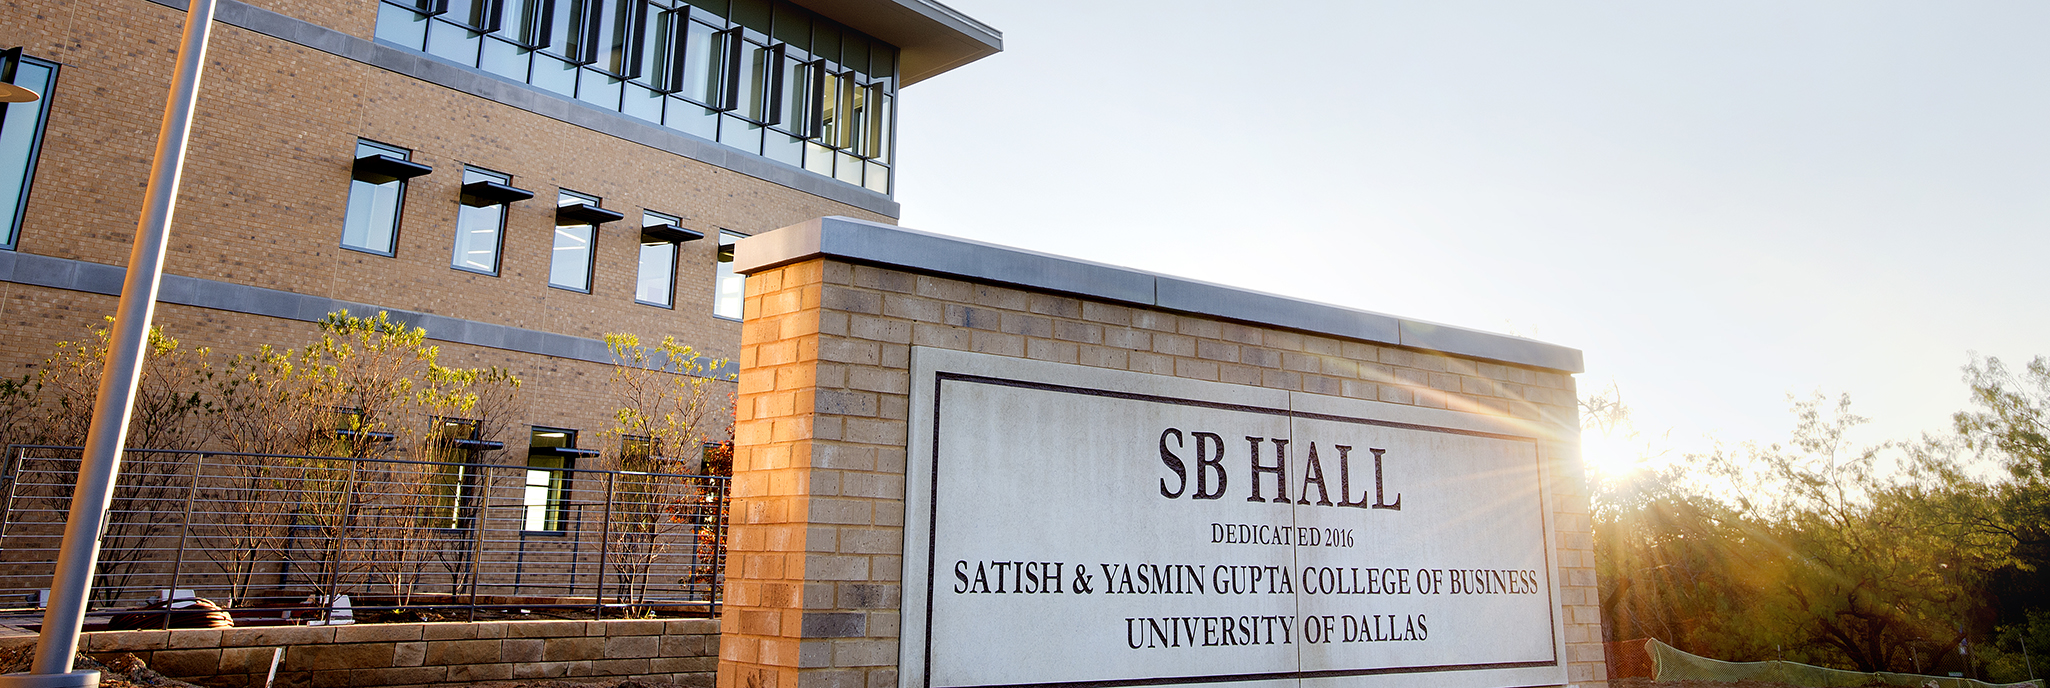 SB Hall Awarded Commercial Construction Project of the Year